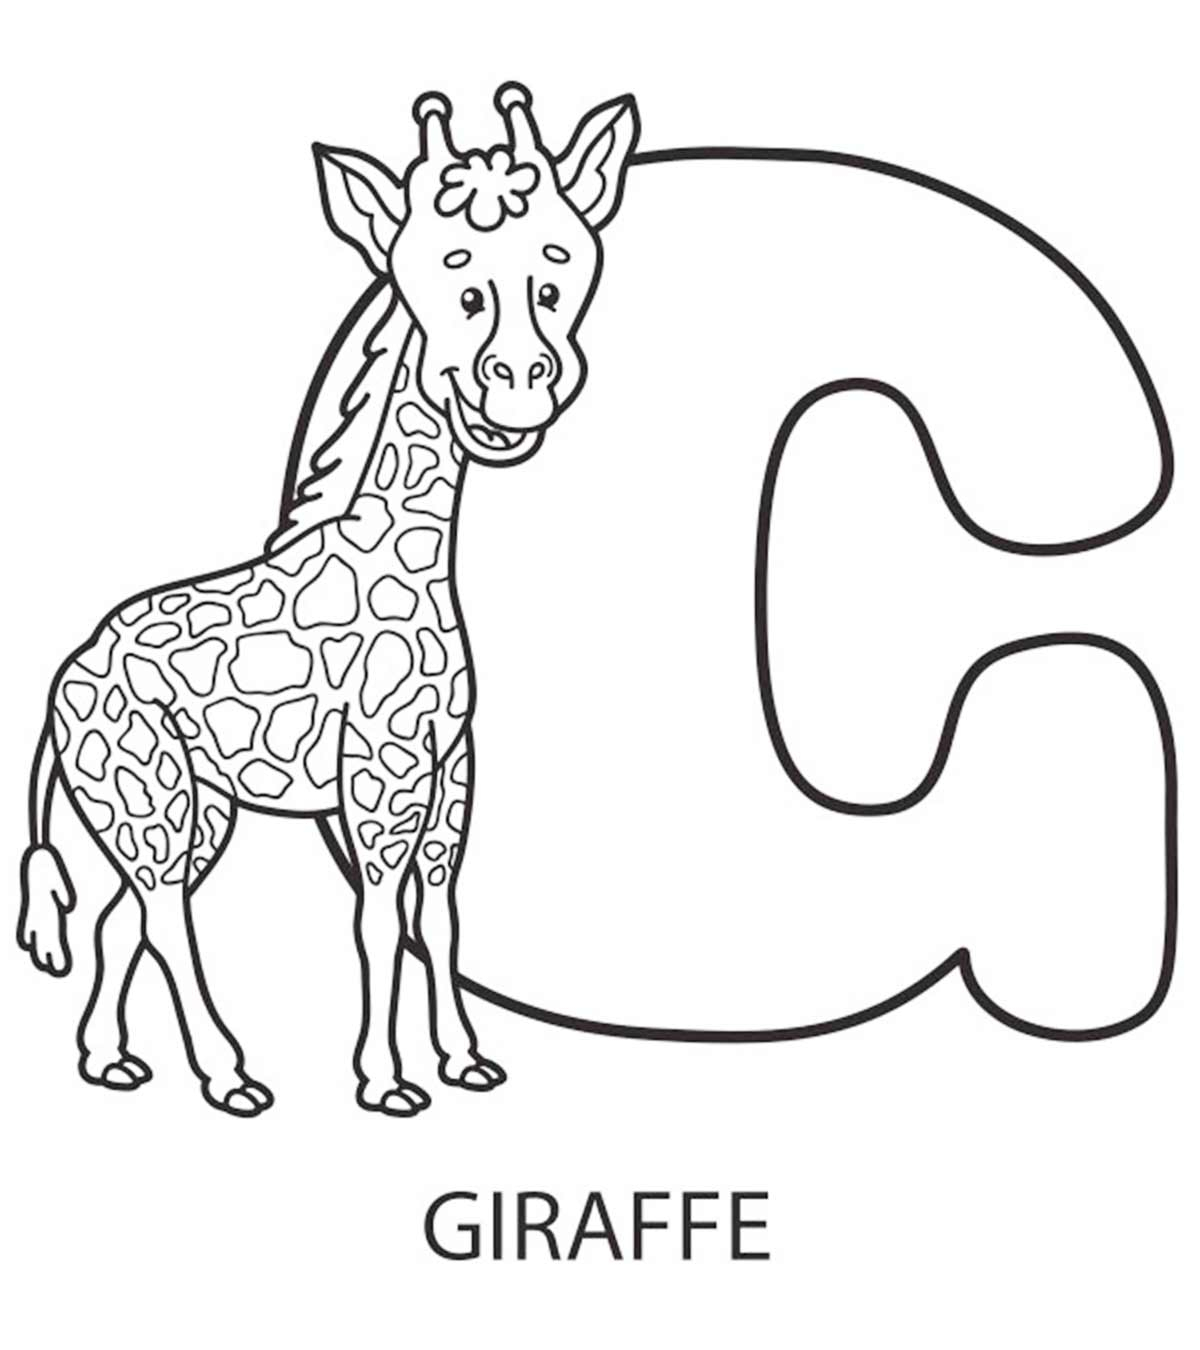 Alphabet Coloring Pages Your Toddler Will Love with Alphabet Coloring Worksheets For Preschoolers